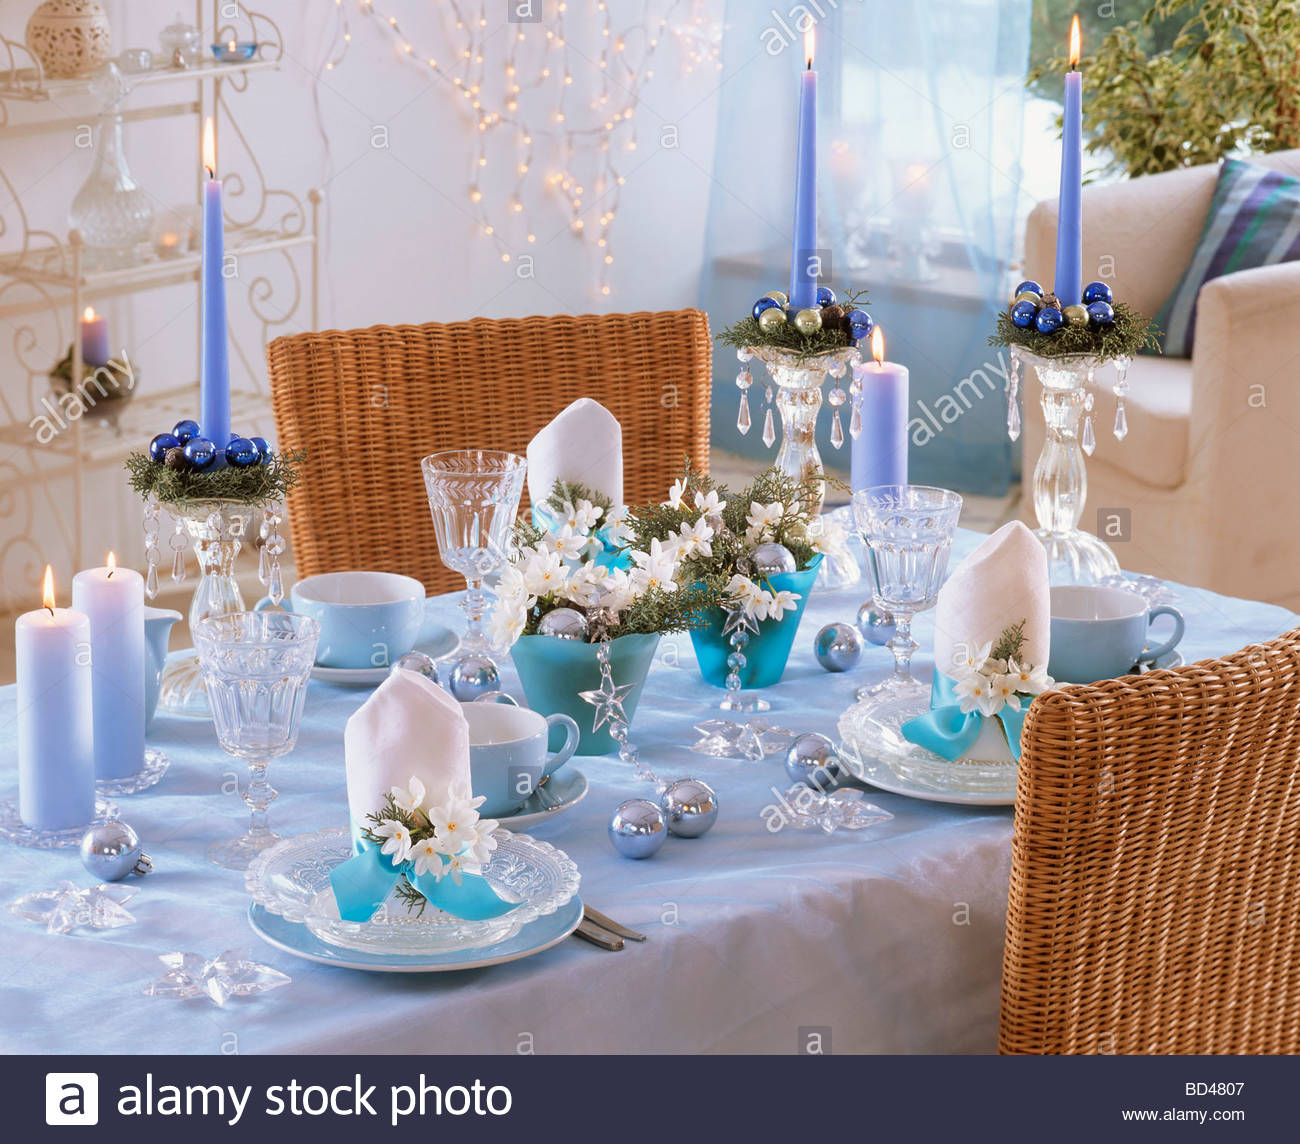 Table decorations blue - Blue White Christmas Table Decorations With Tazetta Narcissi